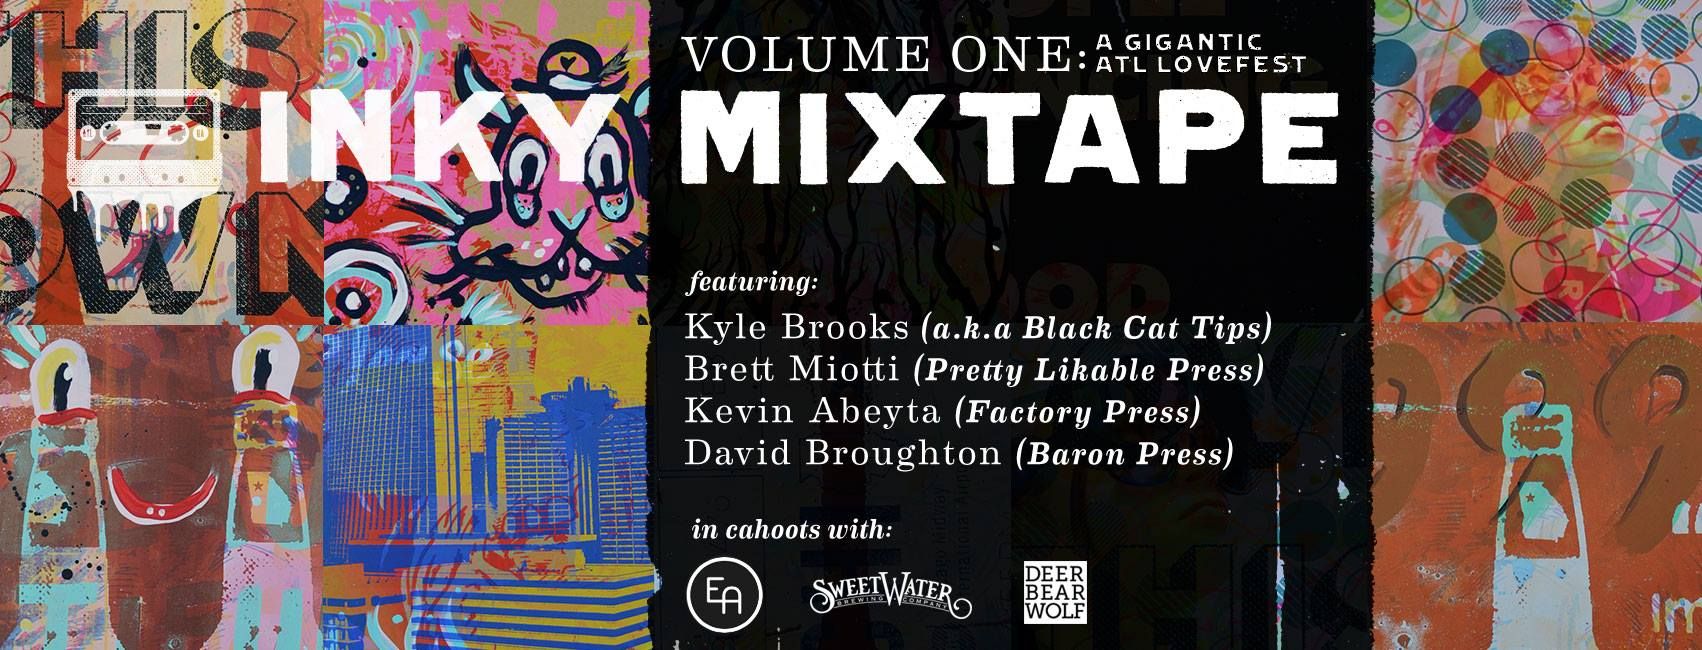 Inky Mixtape, a collaboration between Kyle Brooks, Brett Miotto, Kevin Abeyta, and David Broughton, is unveiled in a Gigantic ATL Lovefest this Saturday night at Edgar Allen.